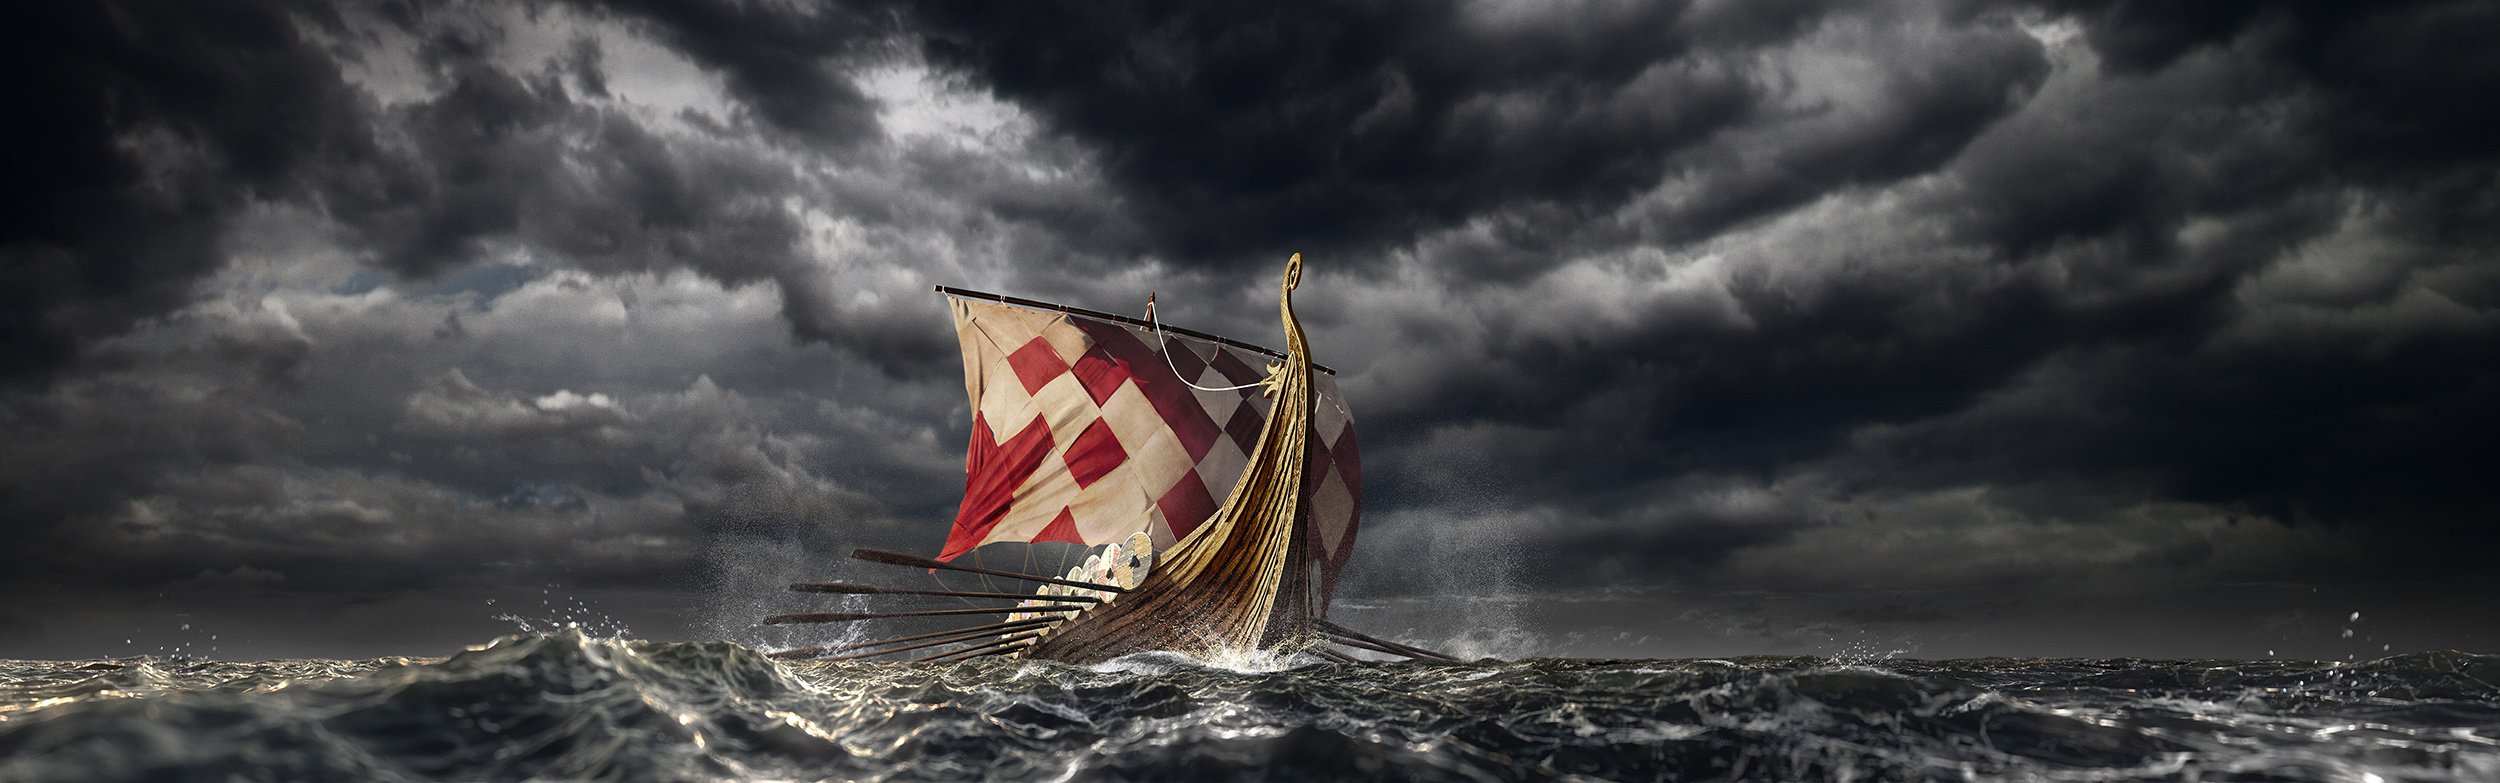 CREAM_MARITIME_MUSEUM_Viking_Ship_2013_nr_2222.jpg